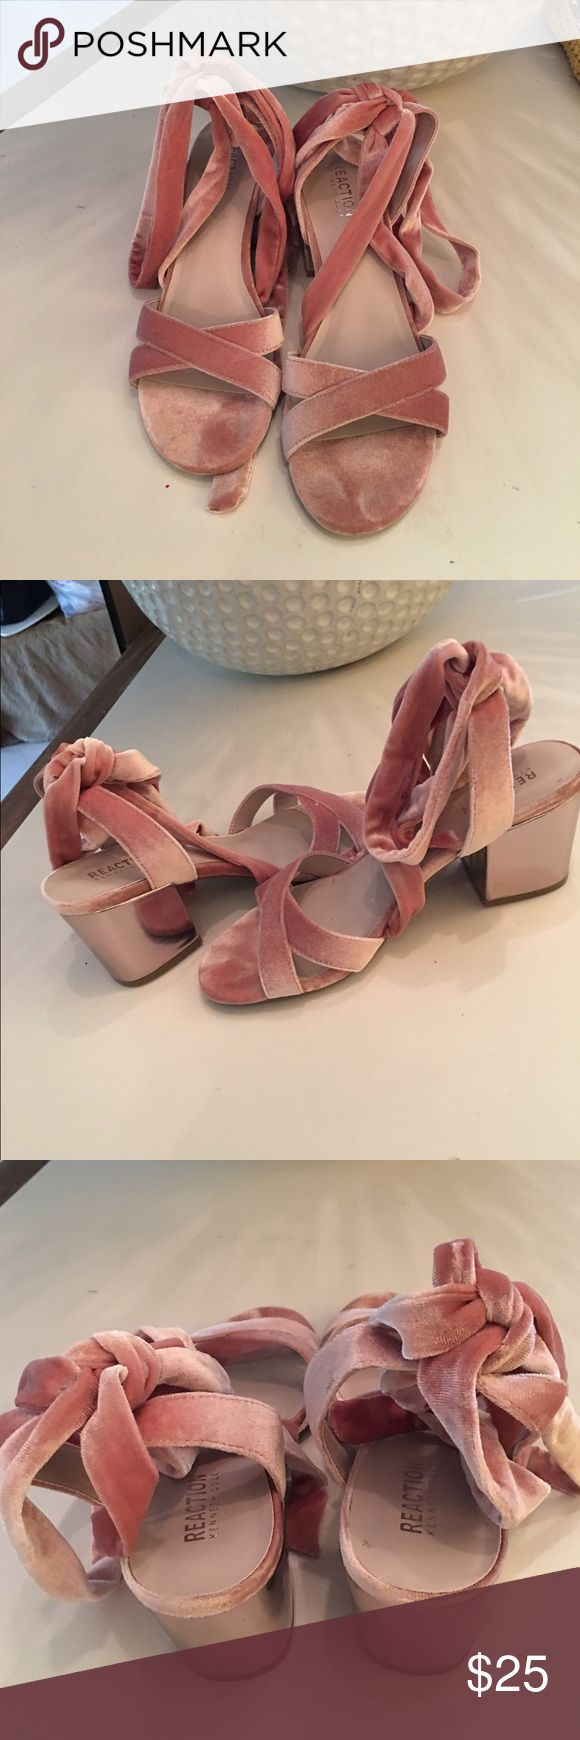 """Kenneth Cole Reaction Velvet gladiator sandals Blush Velvet and silver tone 2.5"""" block heels MEDIUM WIDTH. Worn once but I but I am size NARROW, I loved them sooo much but my feet kept moving forward.  Looks really sexy but doesn't fit my long narrow  feet!😢 Kenneth Cole Reaction Shoes Sandals"""